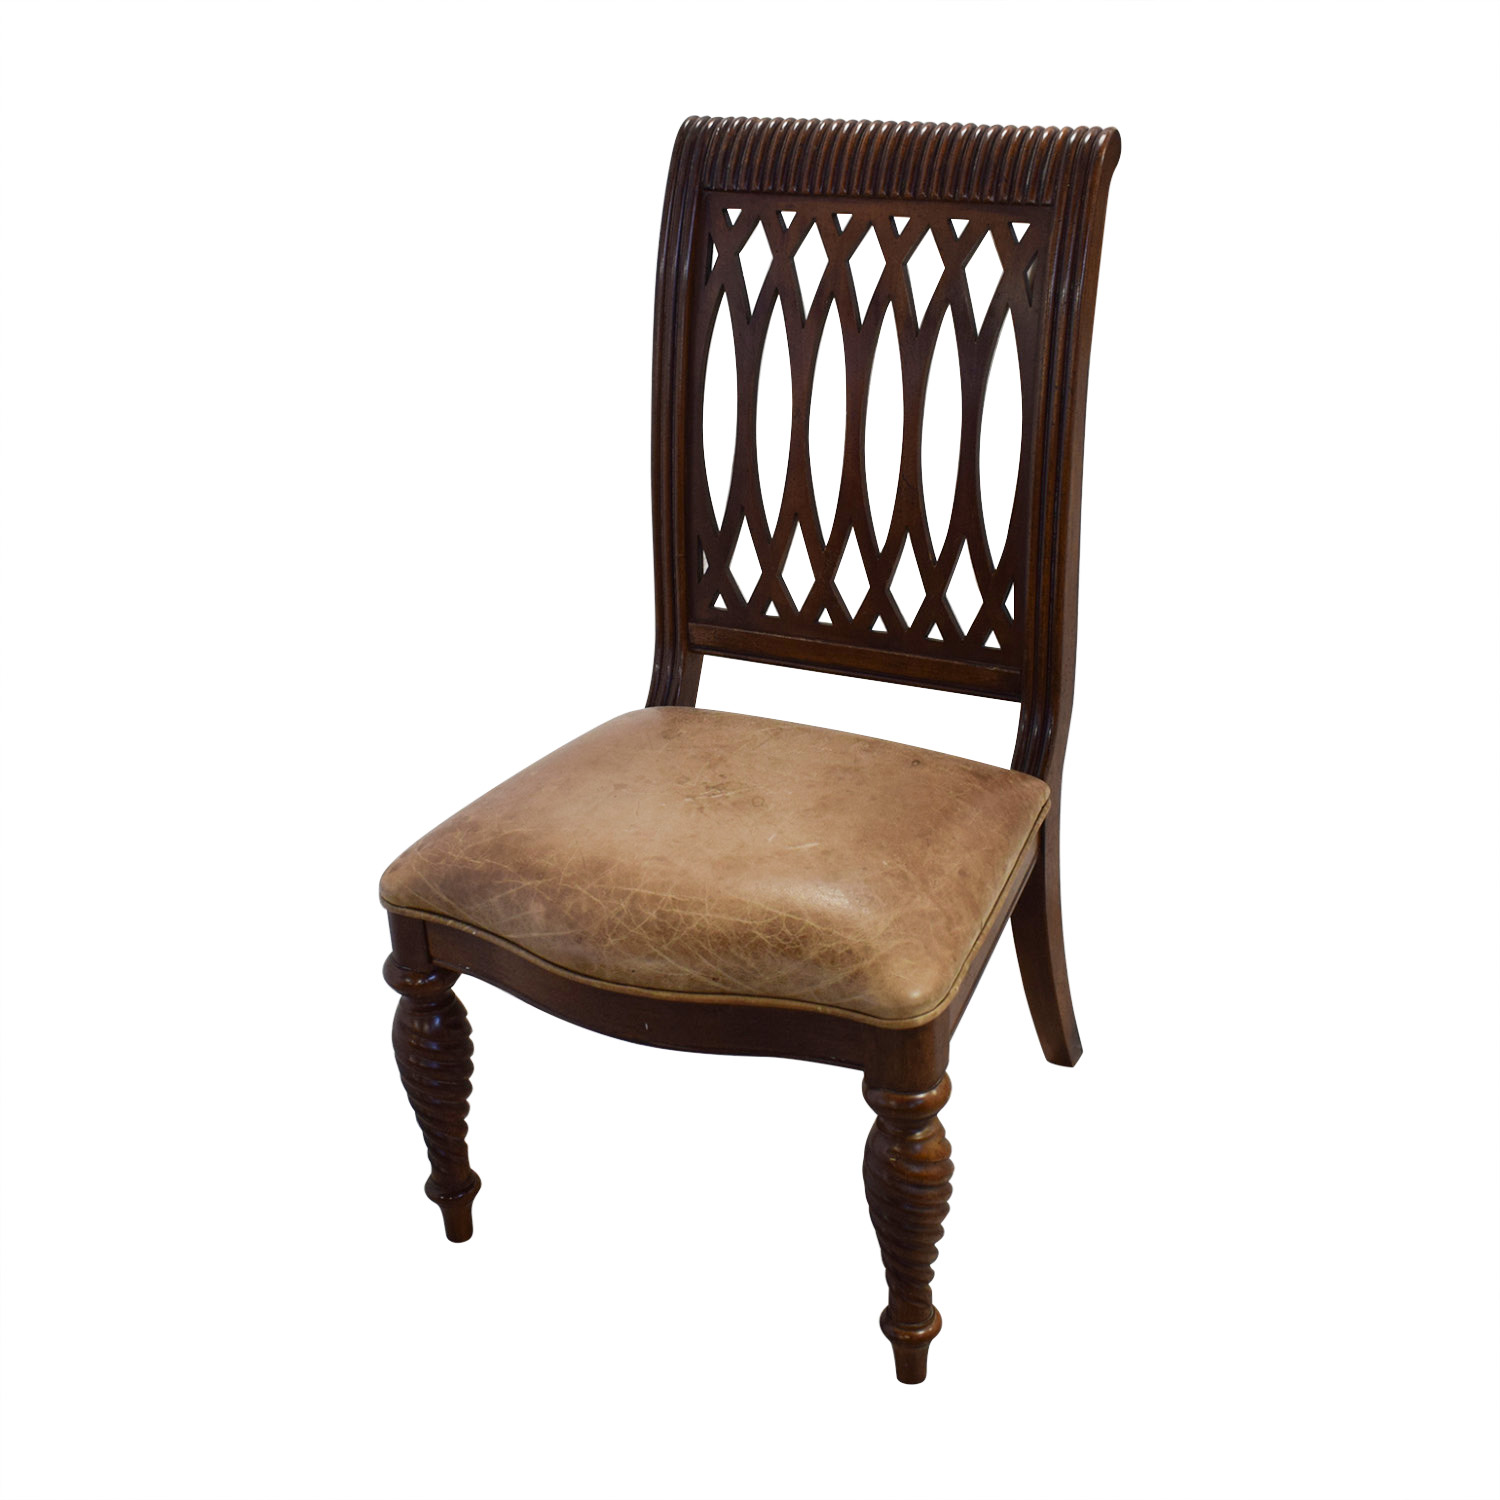 Bernhardt Embassy Row Cherry Carved Wood Dining Chairs / Dining Chairs